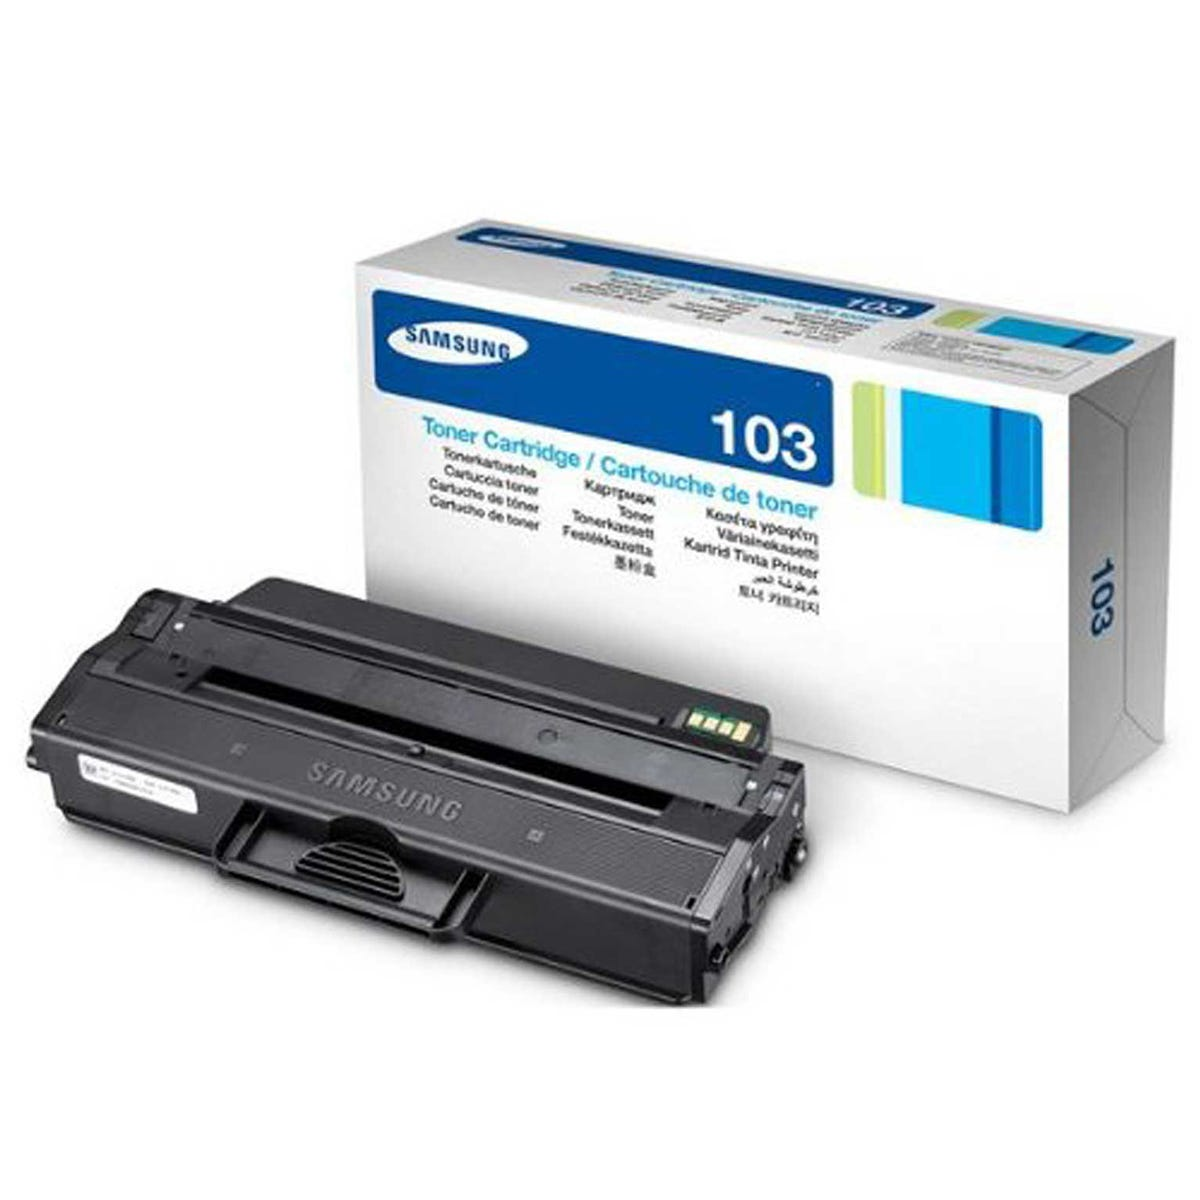 Image of Samsung MLT-D103S Printer Toner Cartridge, Black